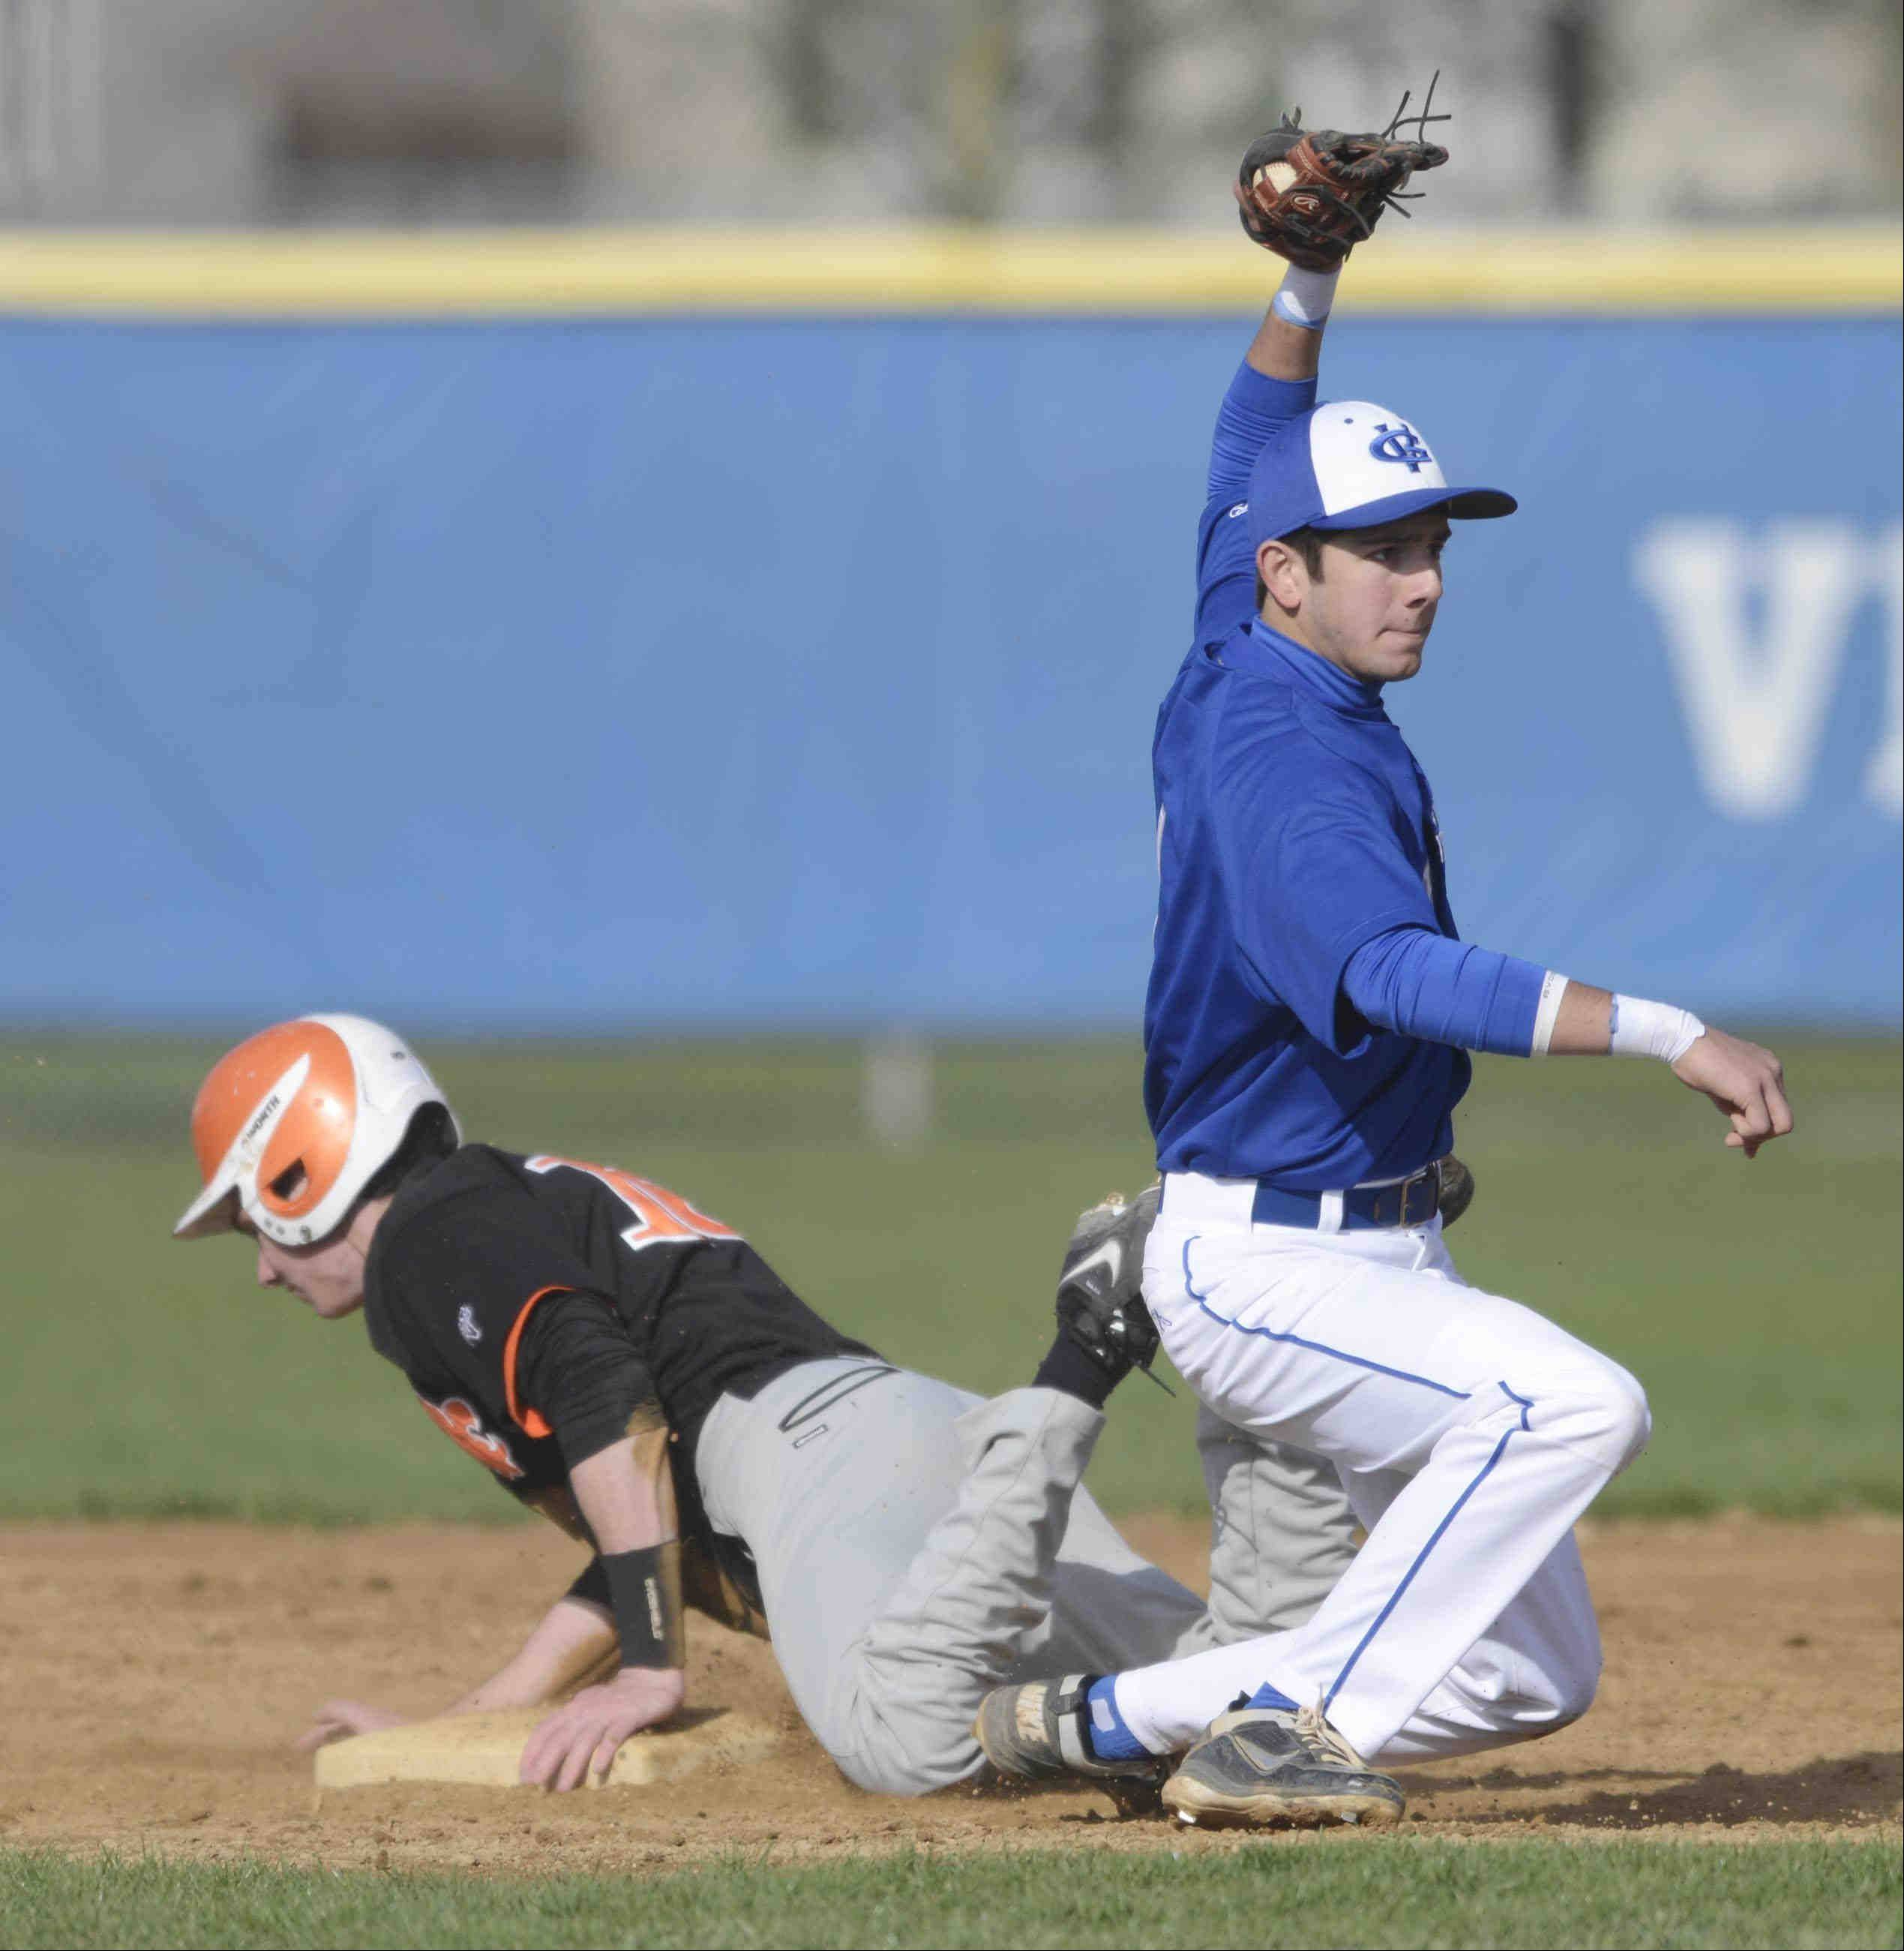 Geneva's Luke Polishak shows the umpire the ball after tagging out St. Charles East's Sean Dunne Thursday in Geneva.